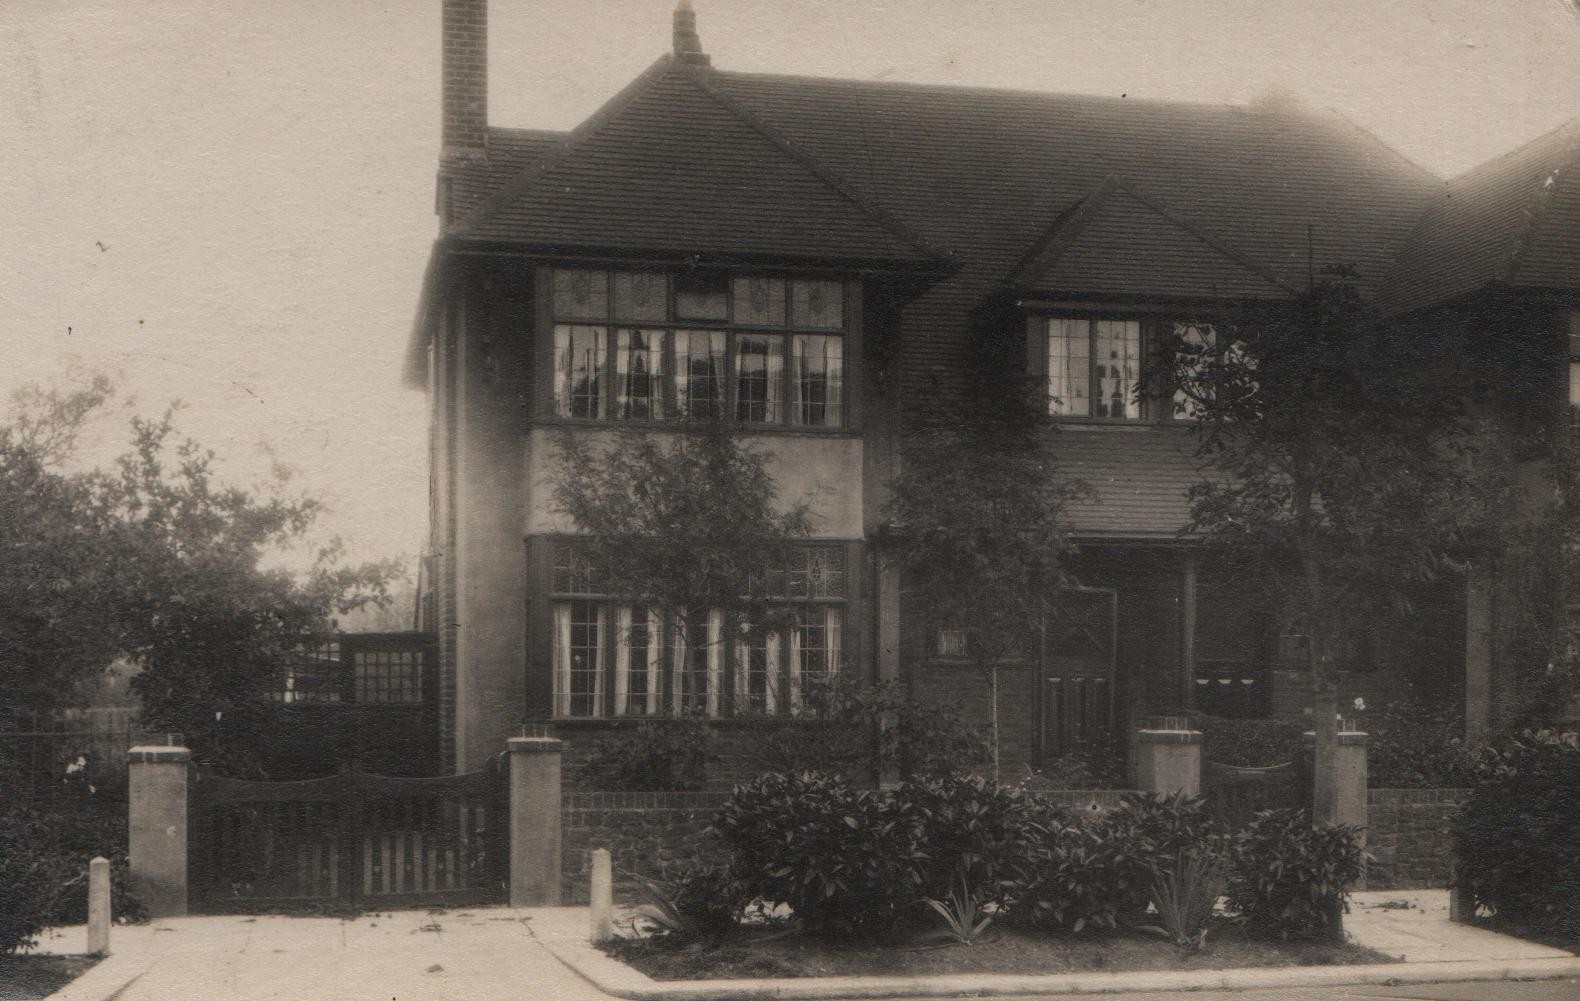 Ashburne, Daines Way, Thorpe - the family home from circa 1925